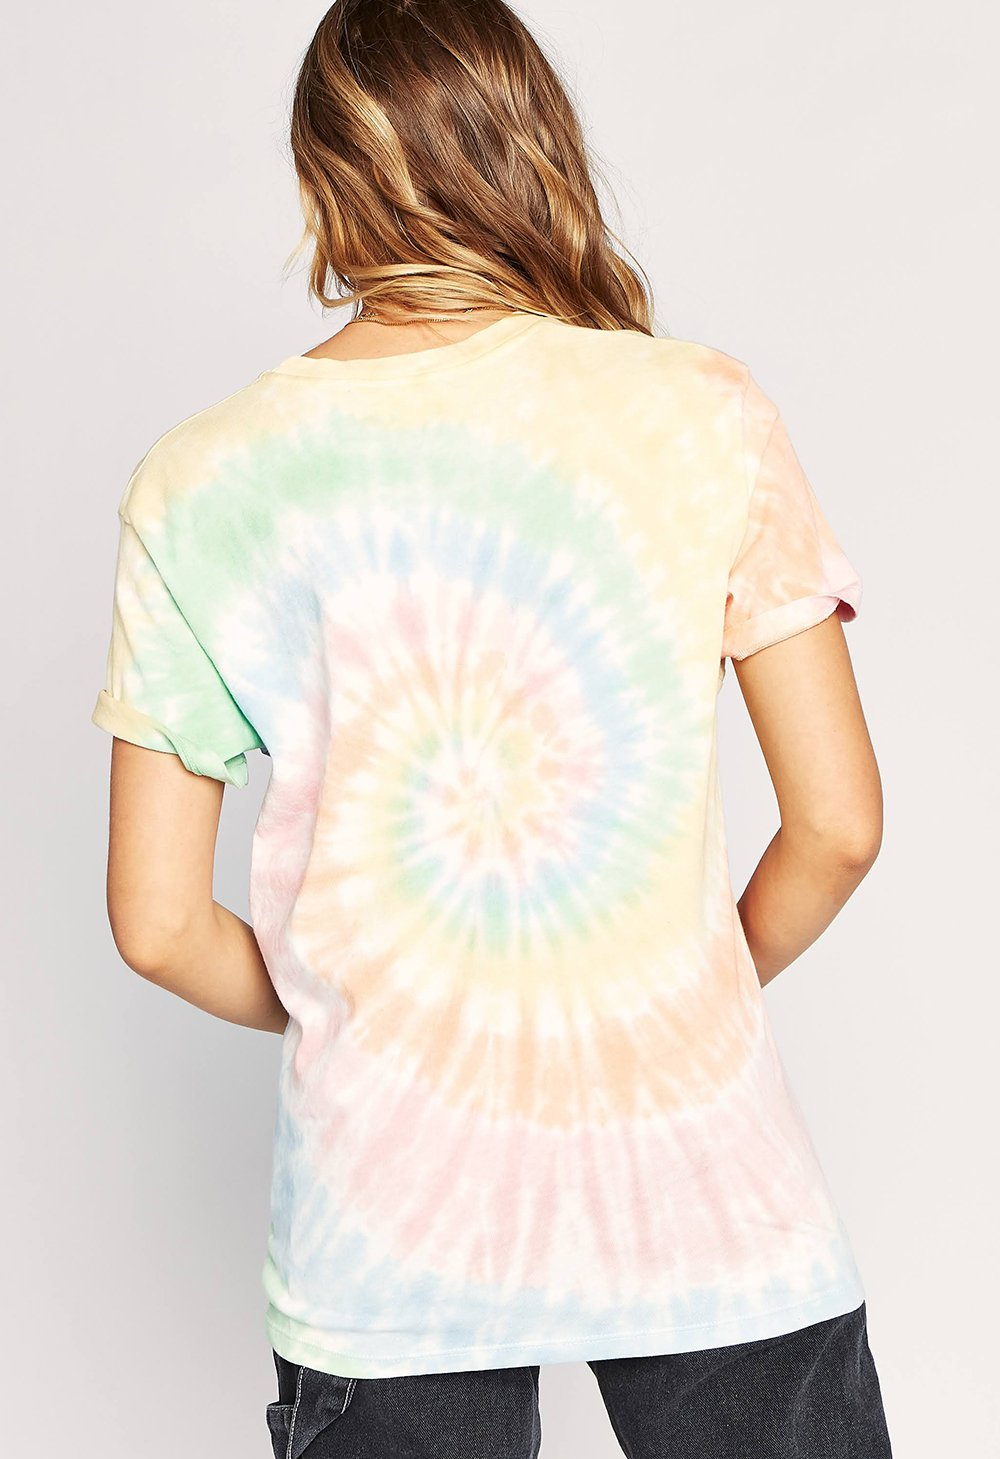 Daydreamer Tie Dye Led Zeppelin Tee